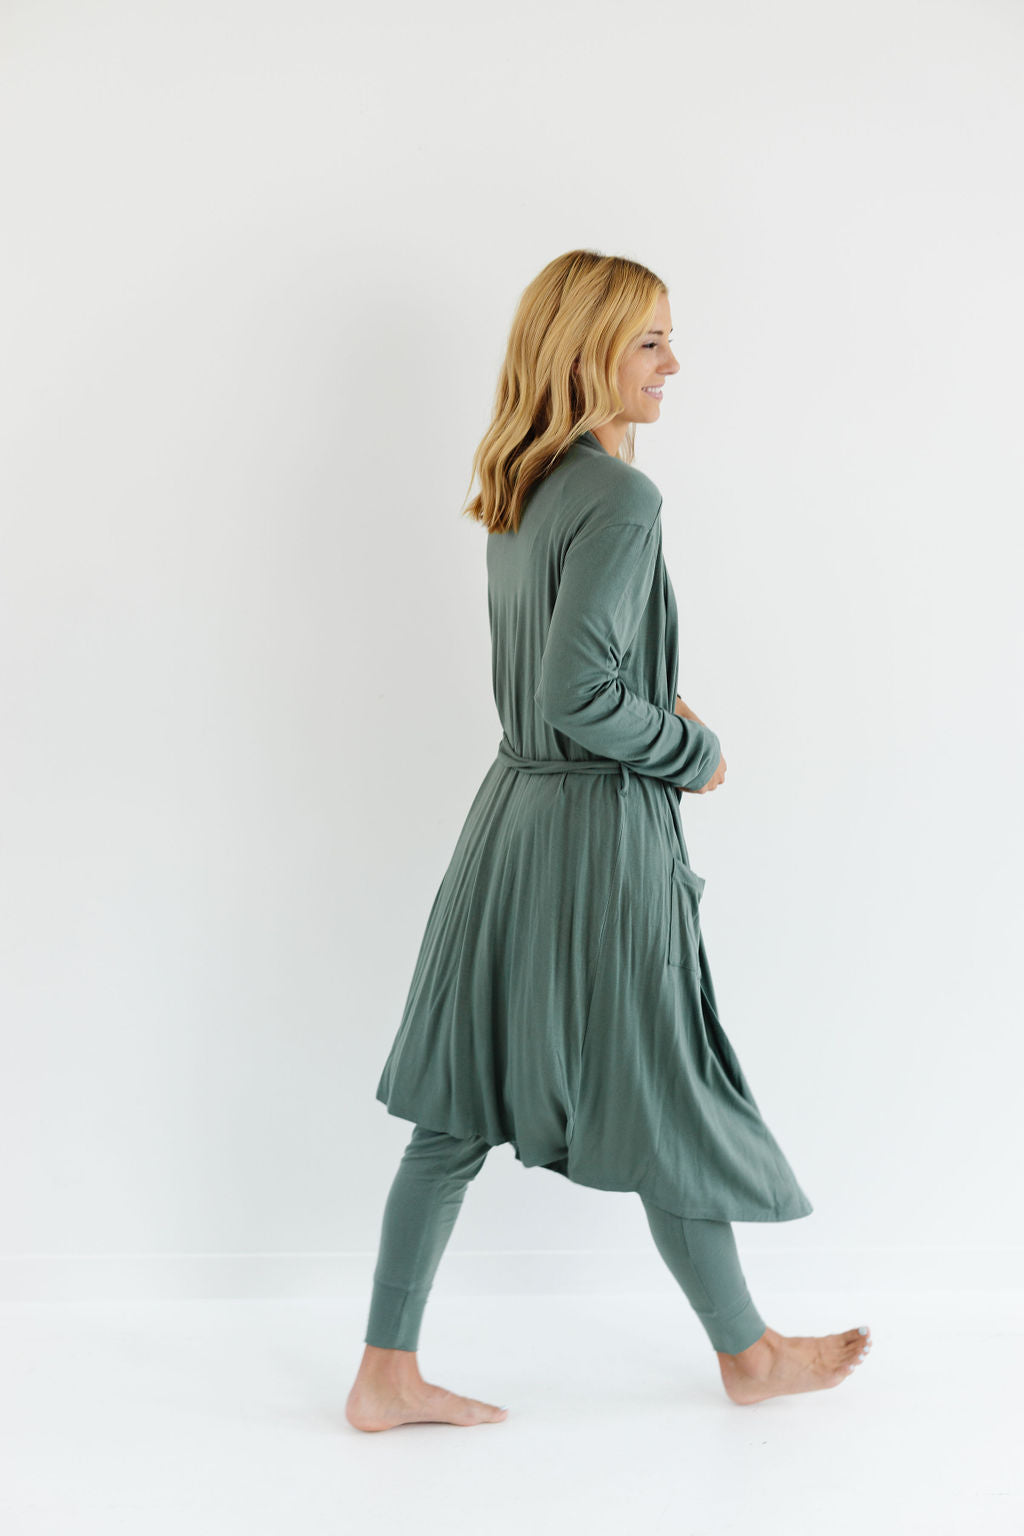 Robe in Basil